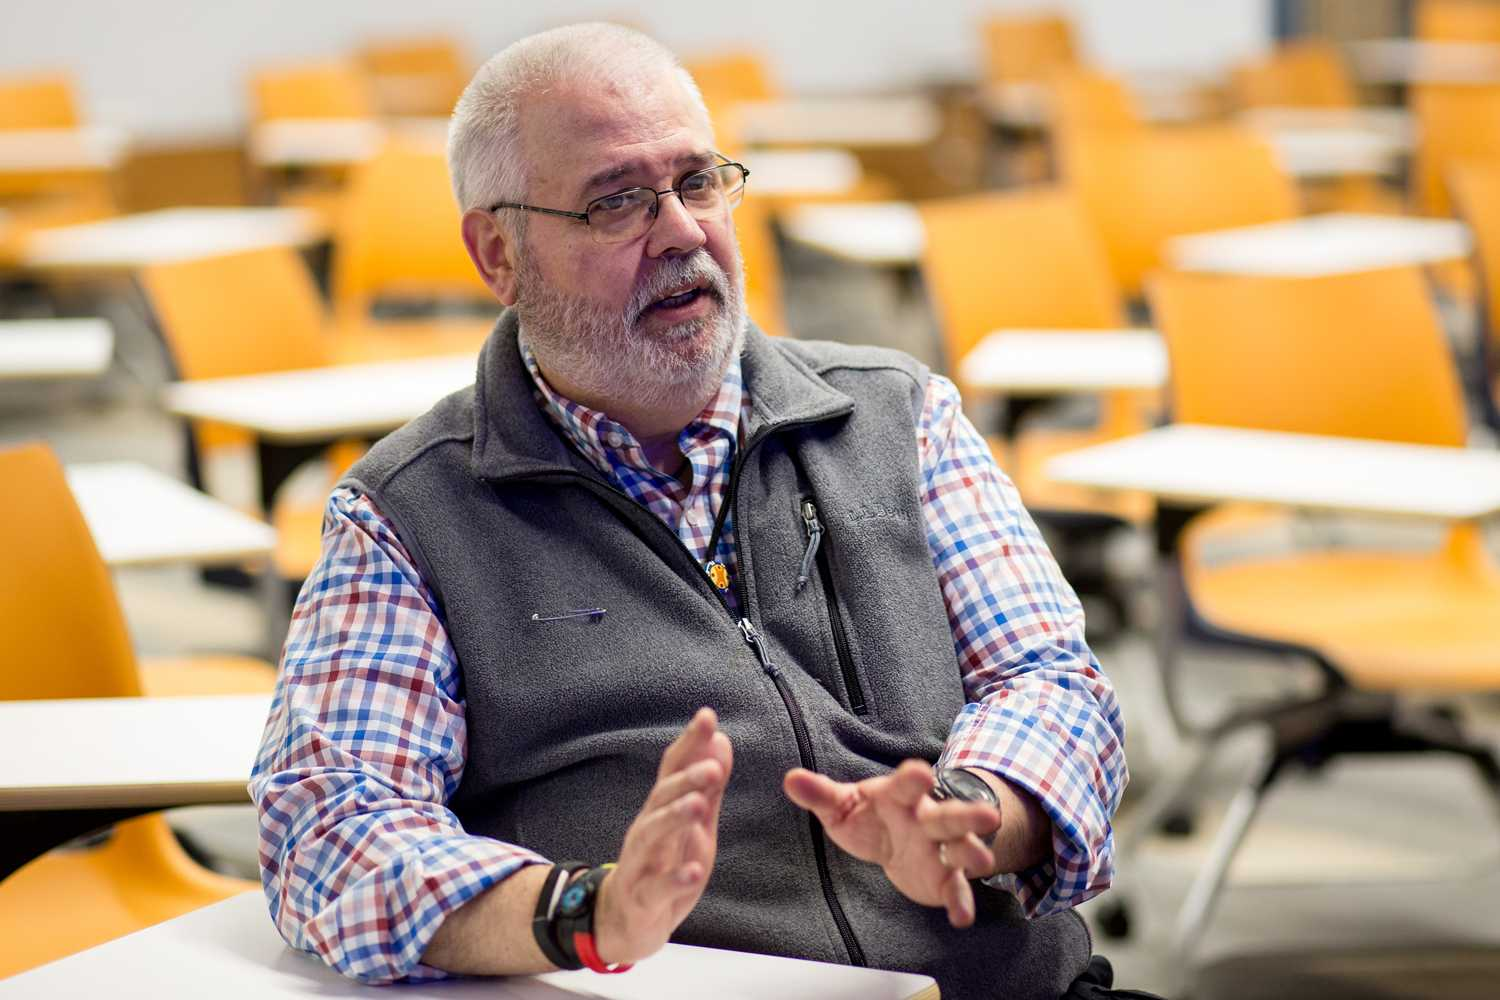 Pitt professor David Korman says some people are quick to criticize the judicial system for not putting enough emphasis on victims' rights, while not accounting for the rights of the accused. (Photo by Thomas Yang | Visual Editor)